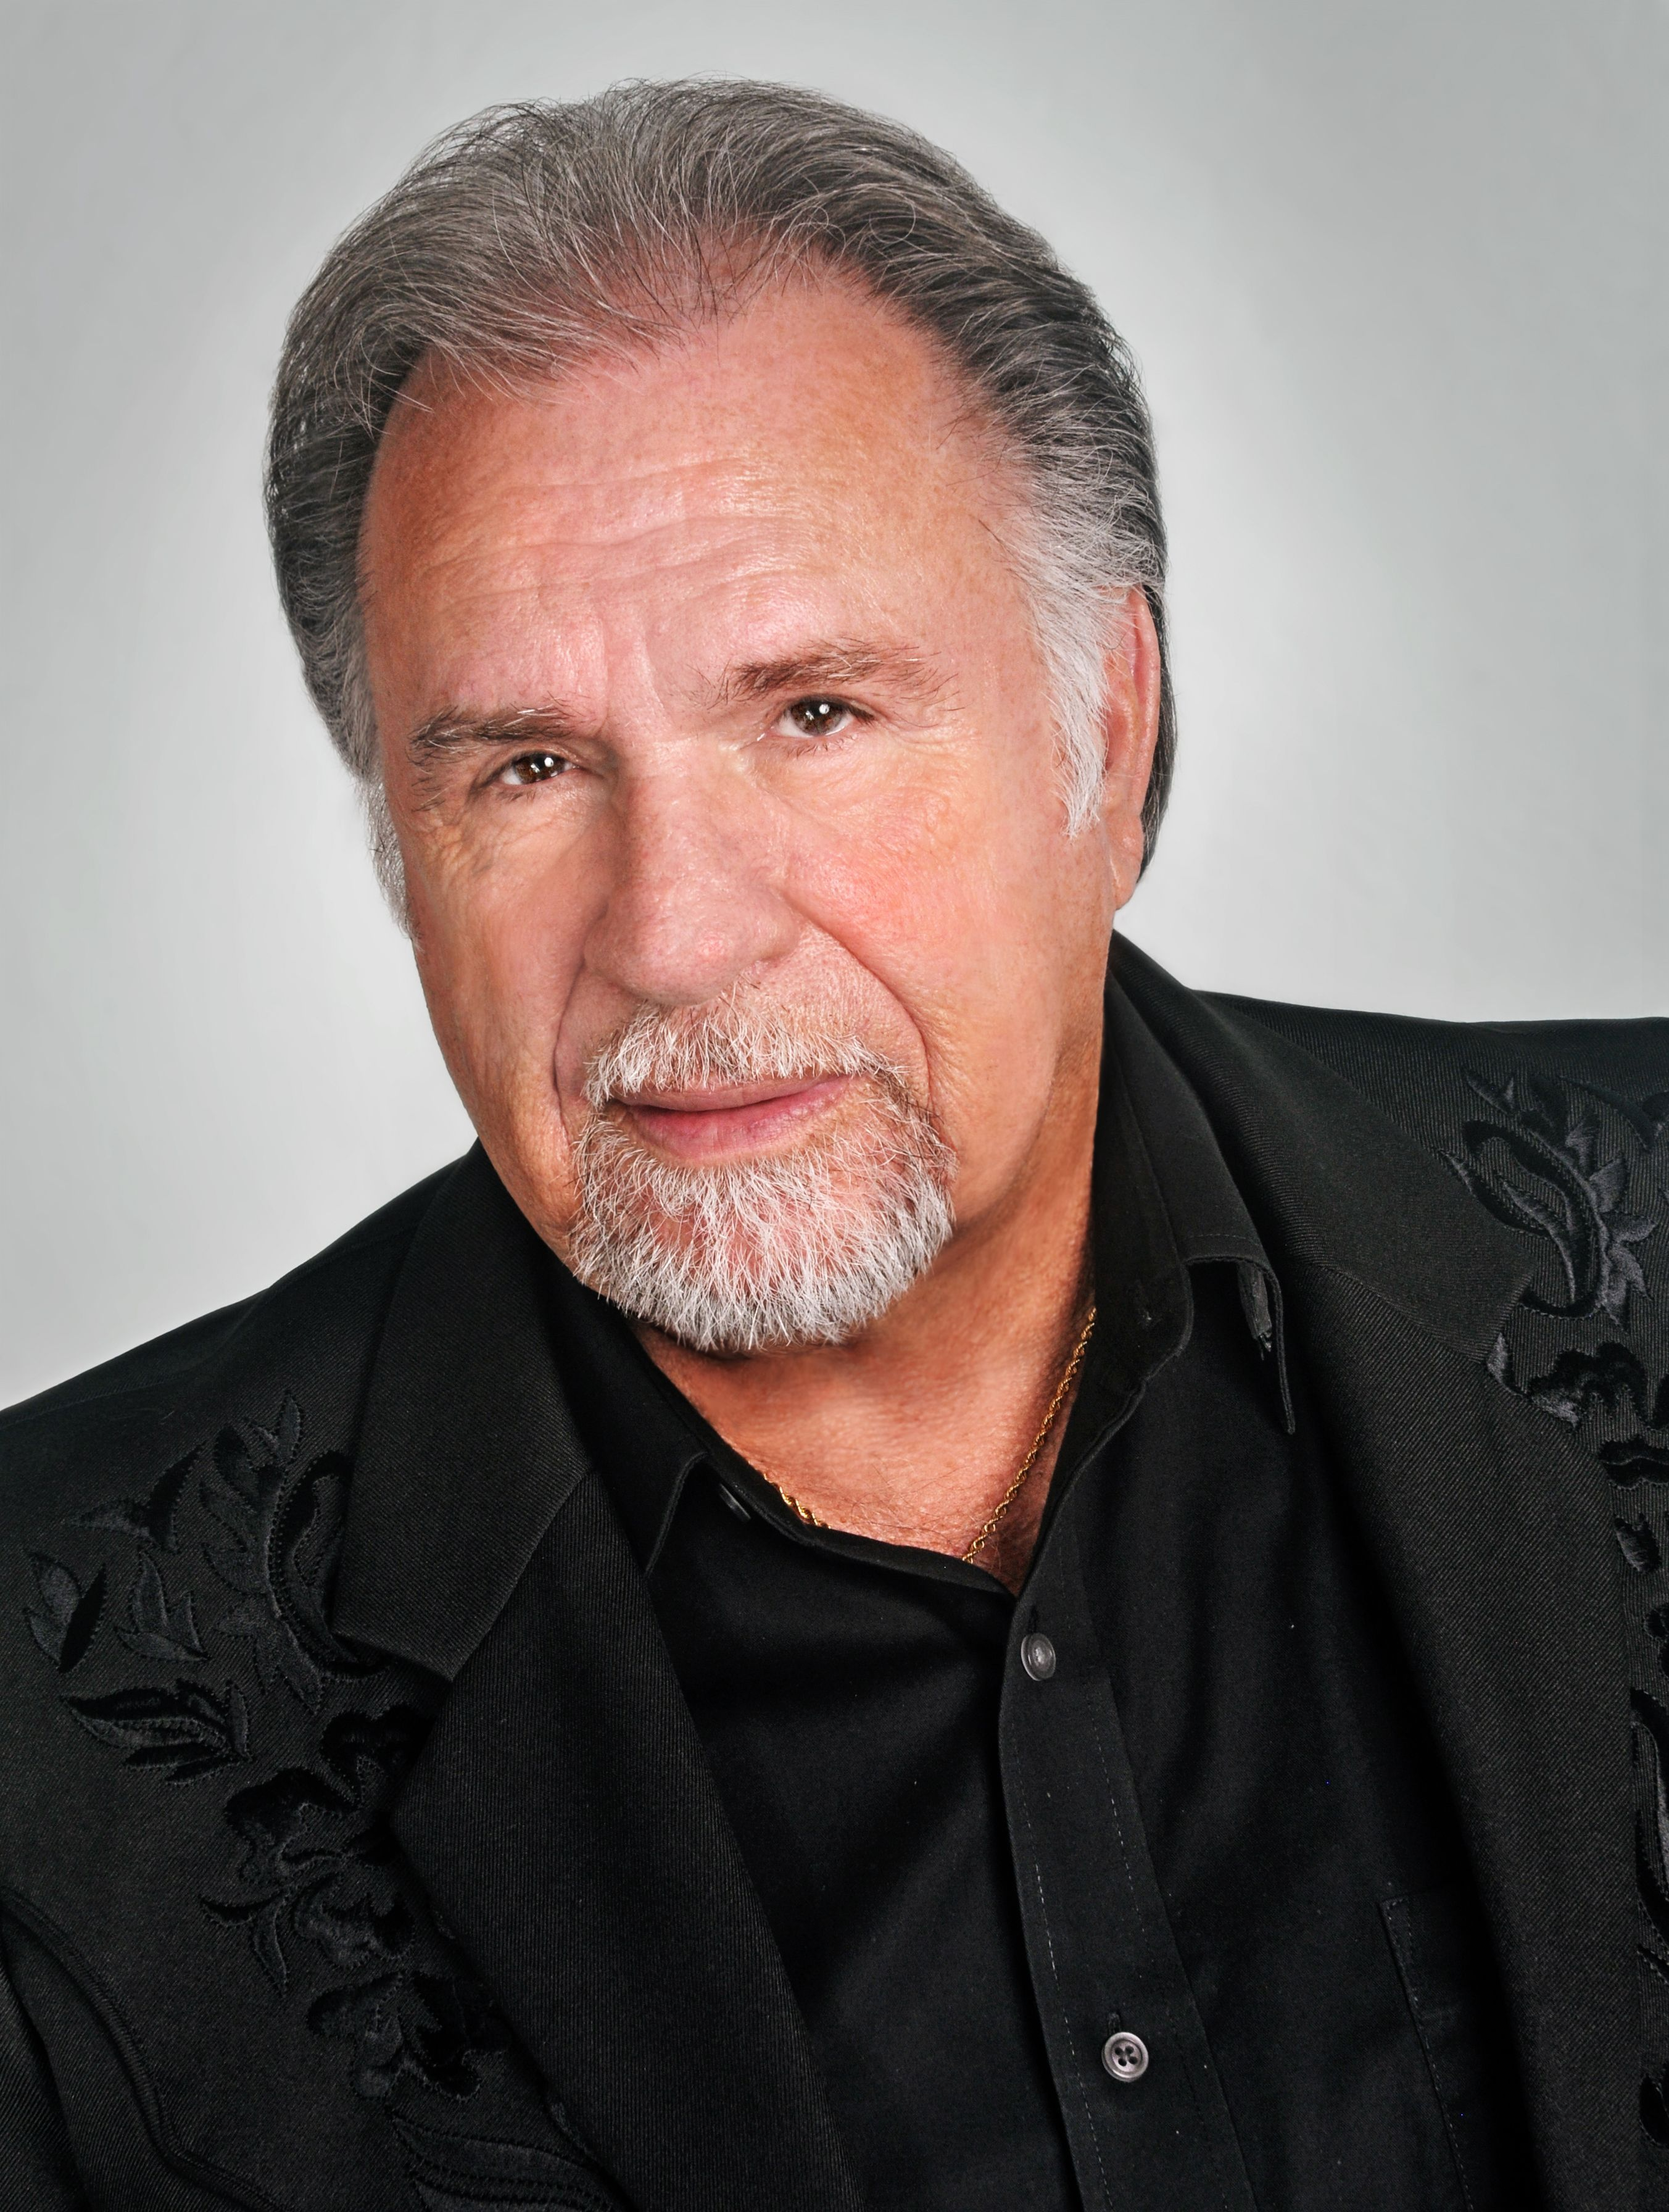 NEWS: The country music singer, Gene Watson, has announced tour dates for the end of this year and throughout 2016. He will be touring in support of his latest release, My Heroes Have Always Been Country. You can check out the dates and details at http://digtb.us/1N8zYoC